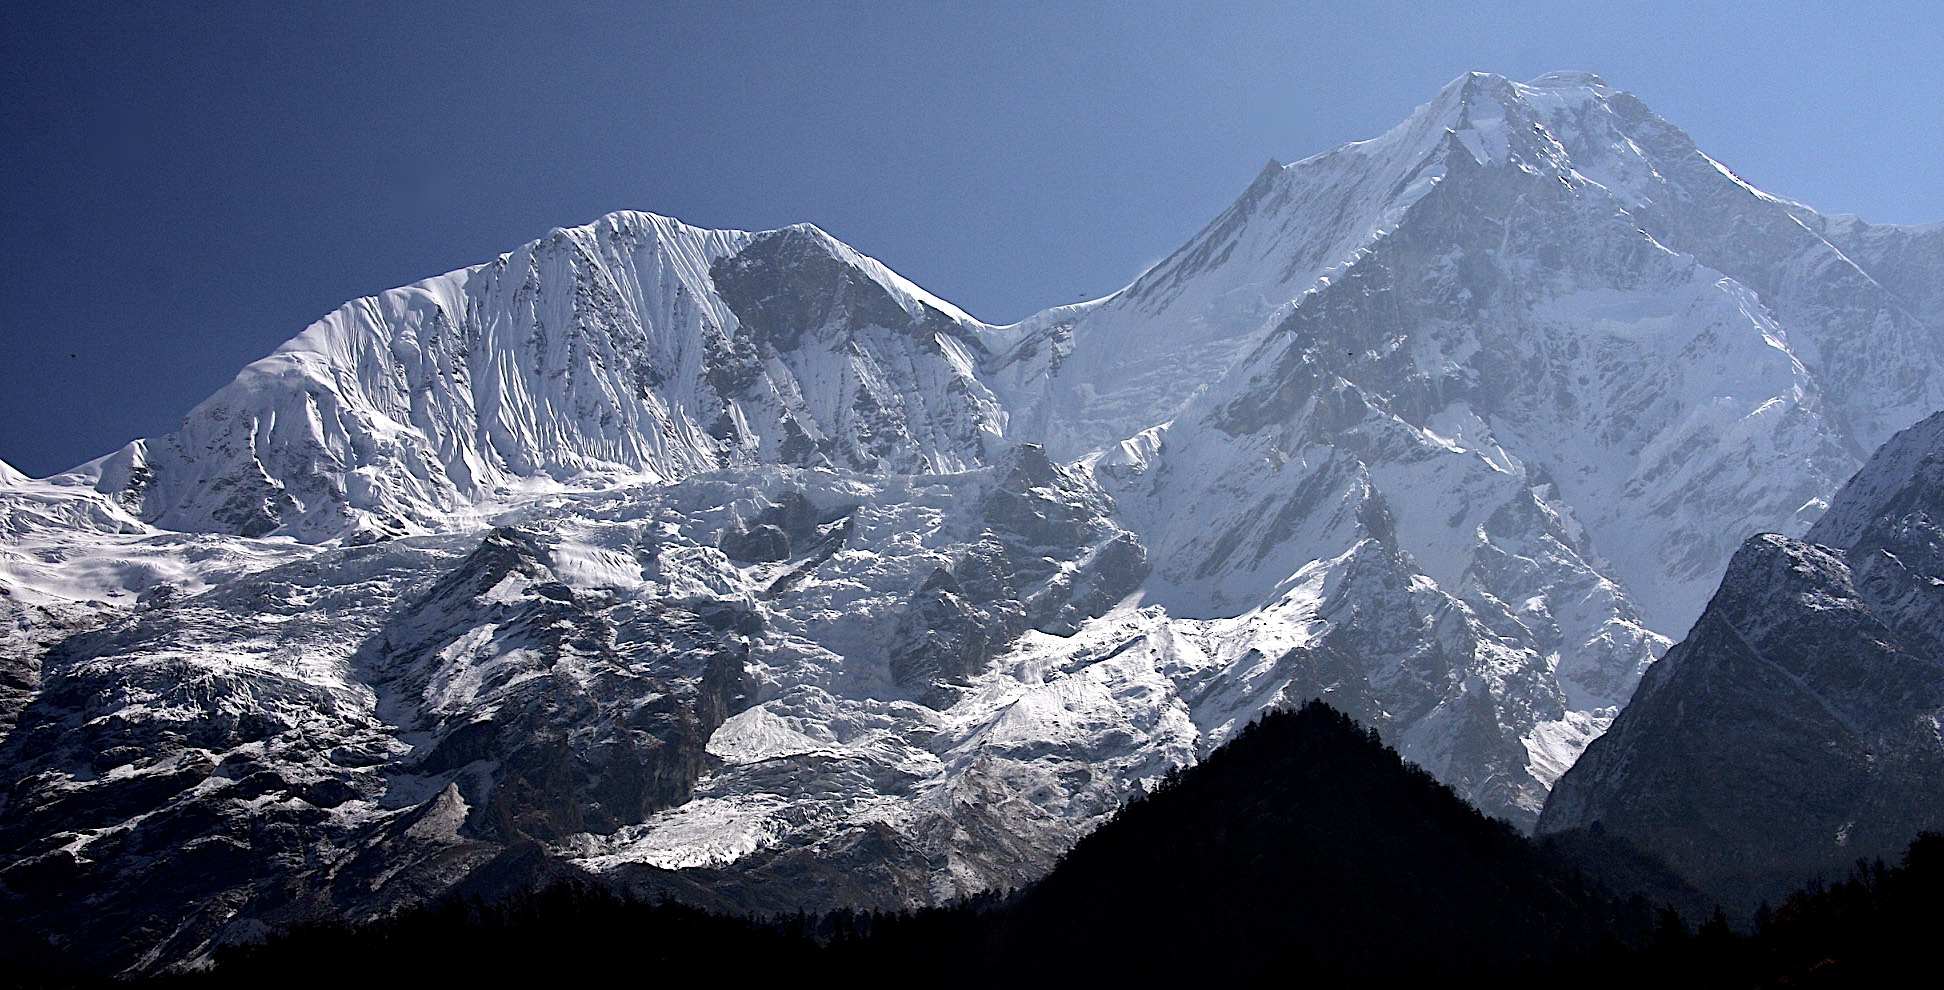 Manaslu's West Face